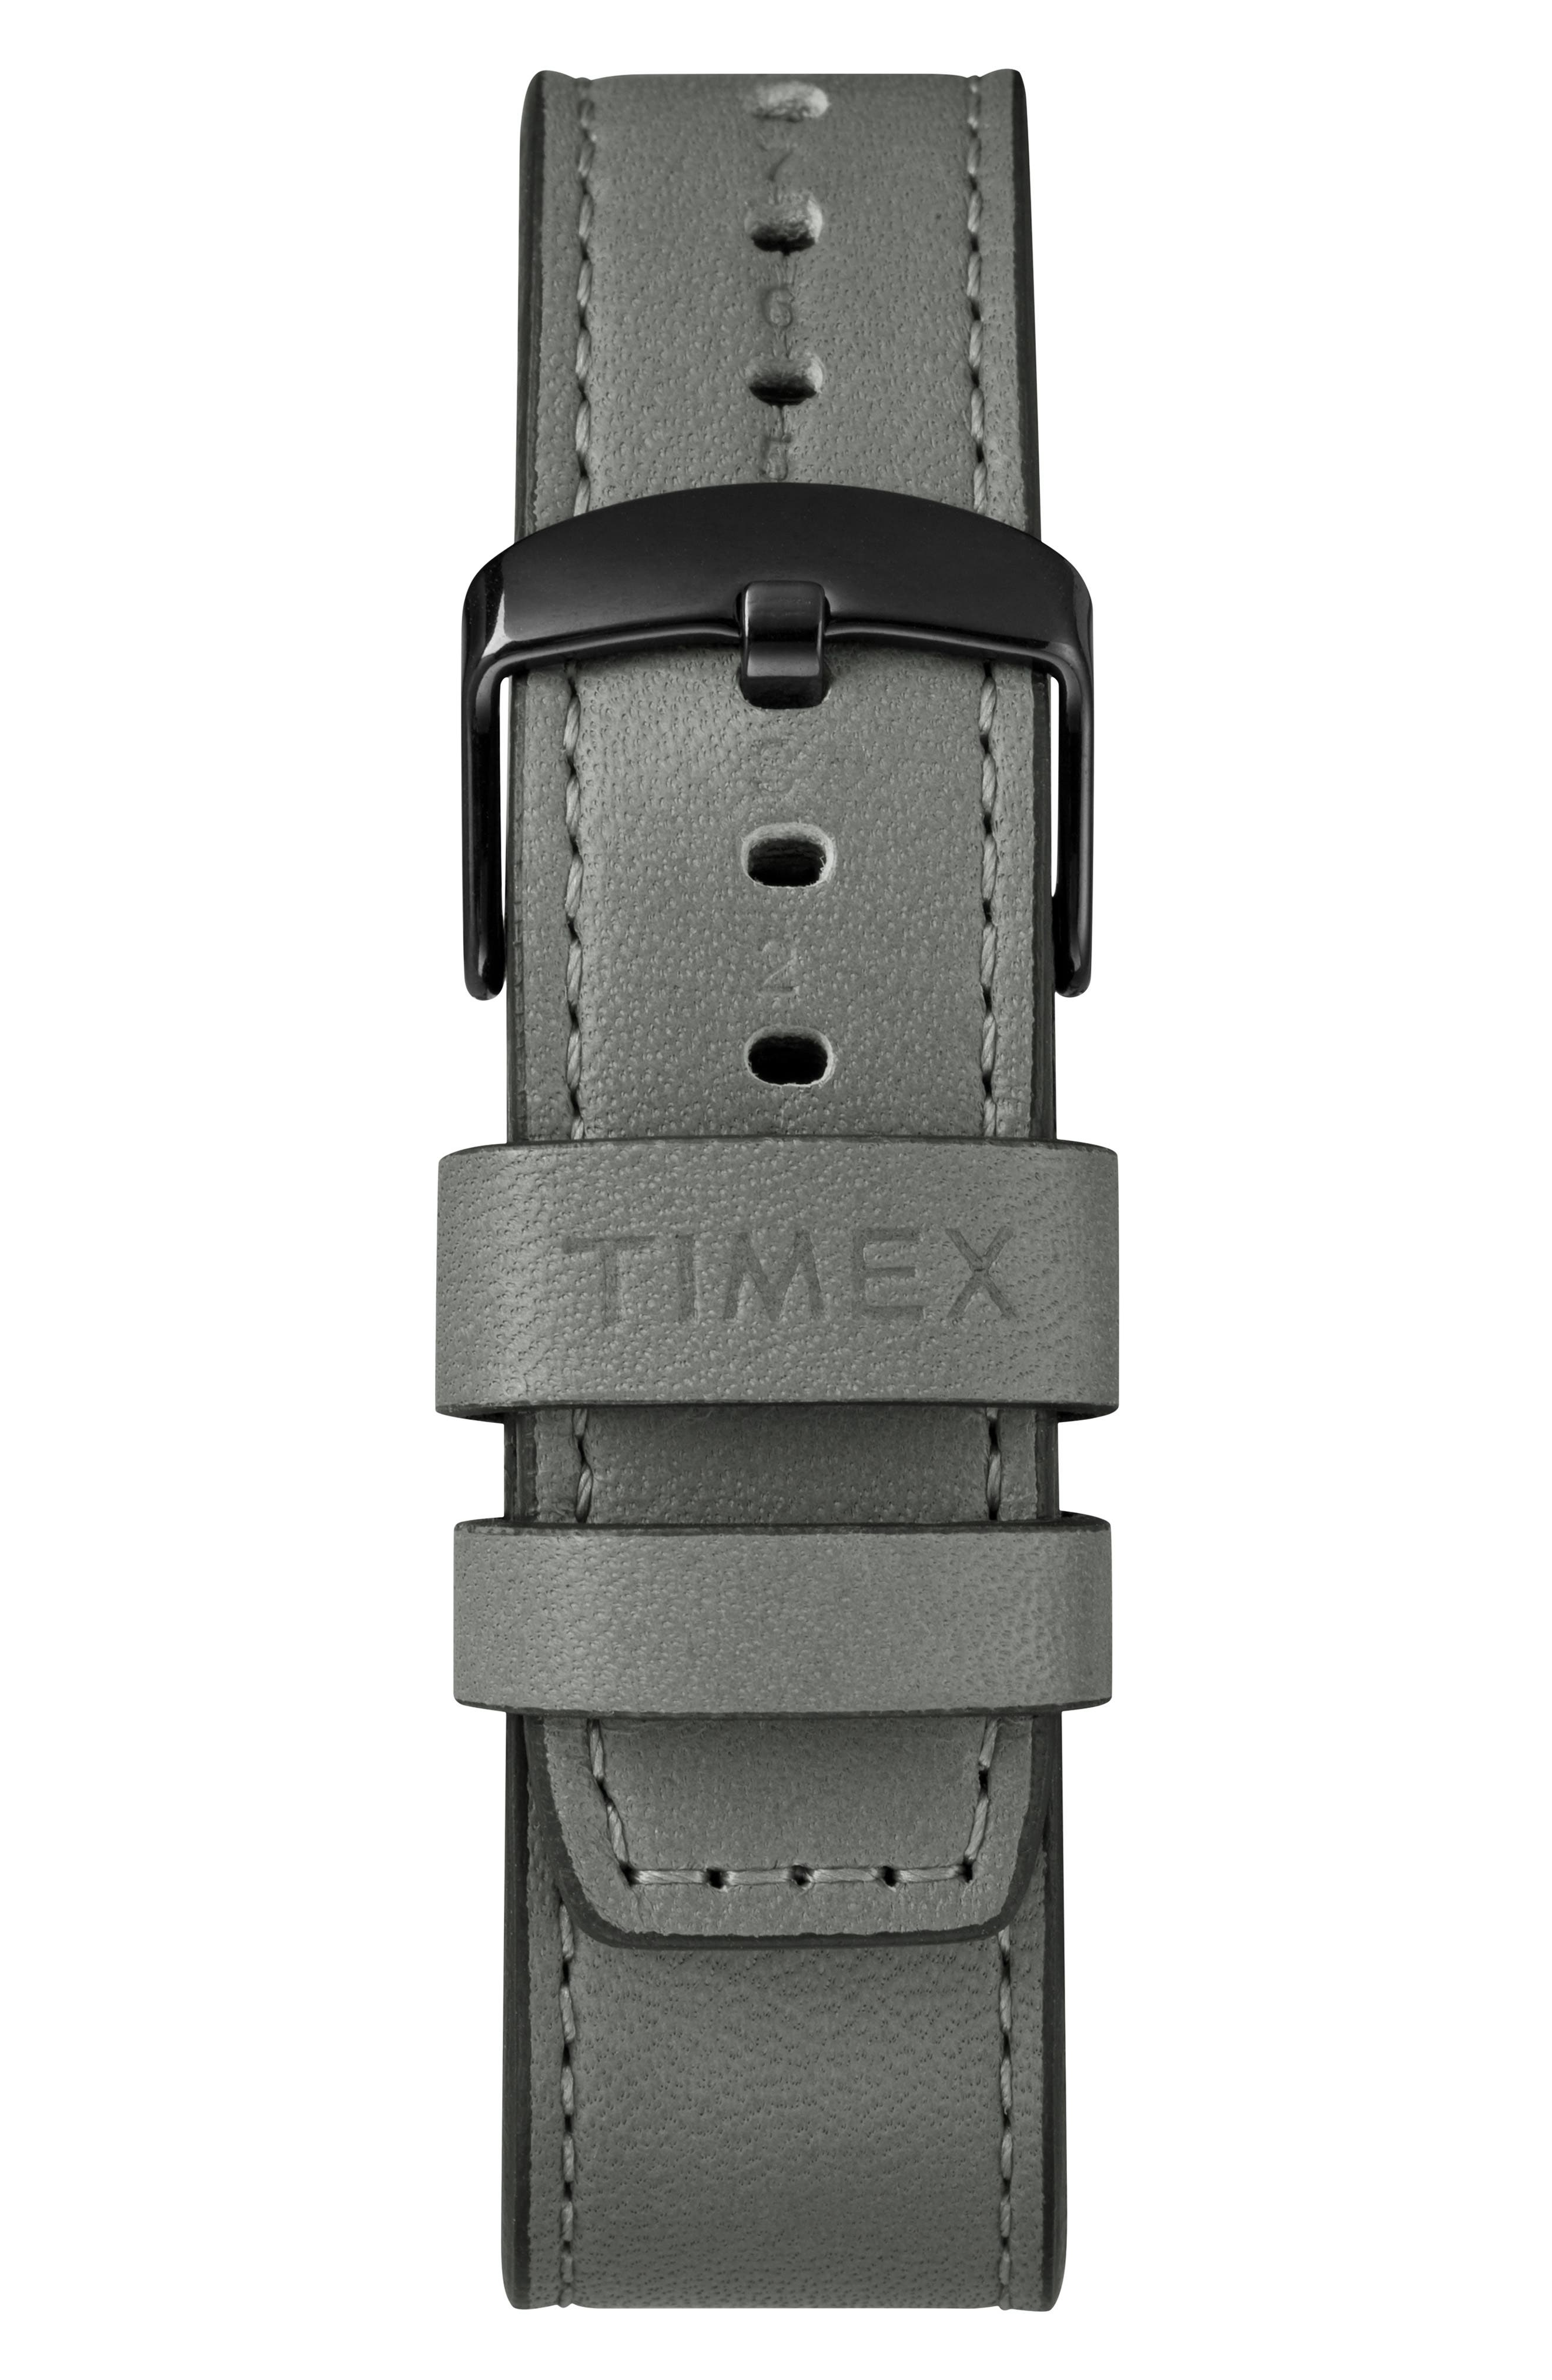 Timex<sup>®</sup> x Todd Snyder The Military Chronograph Leather Strap Watch Set, 43mm,                             Alternate thumbnail 3, color,                             GREY/ GREY